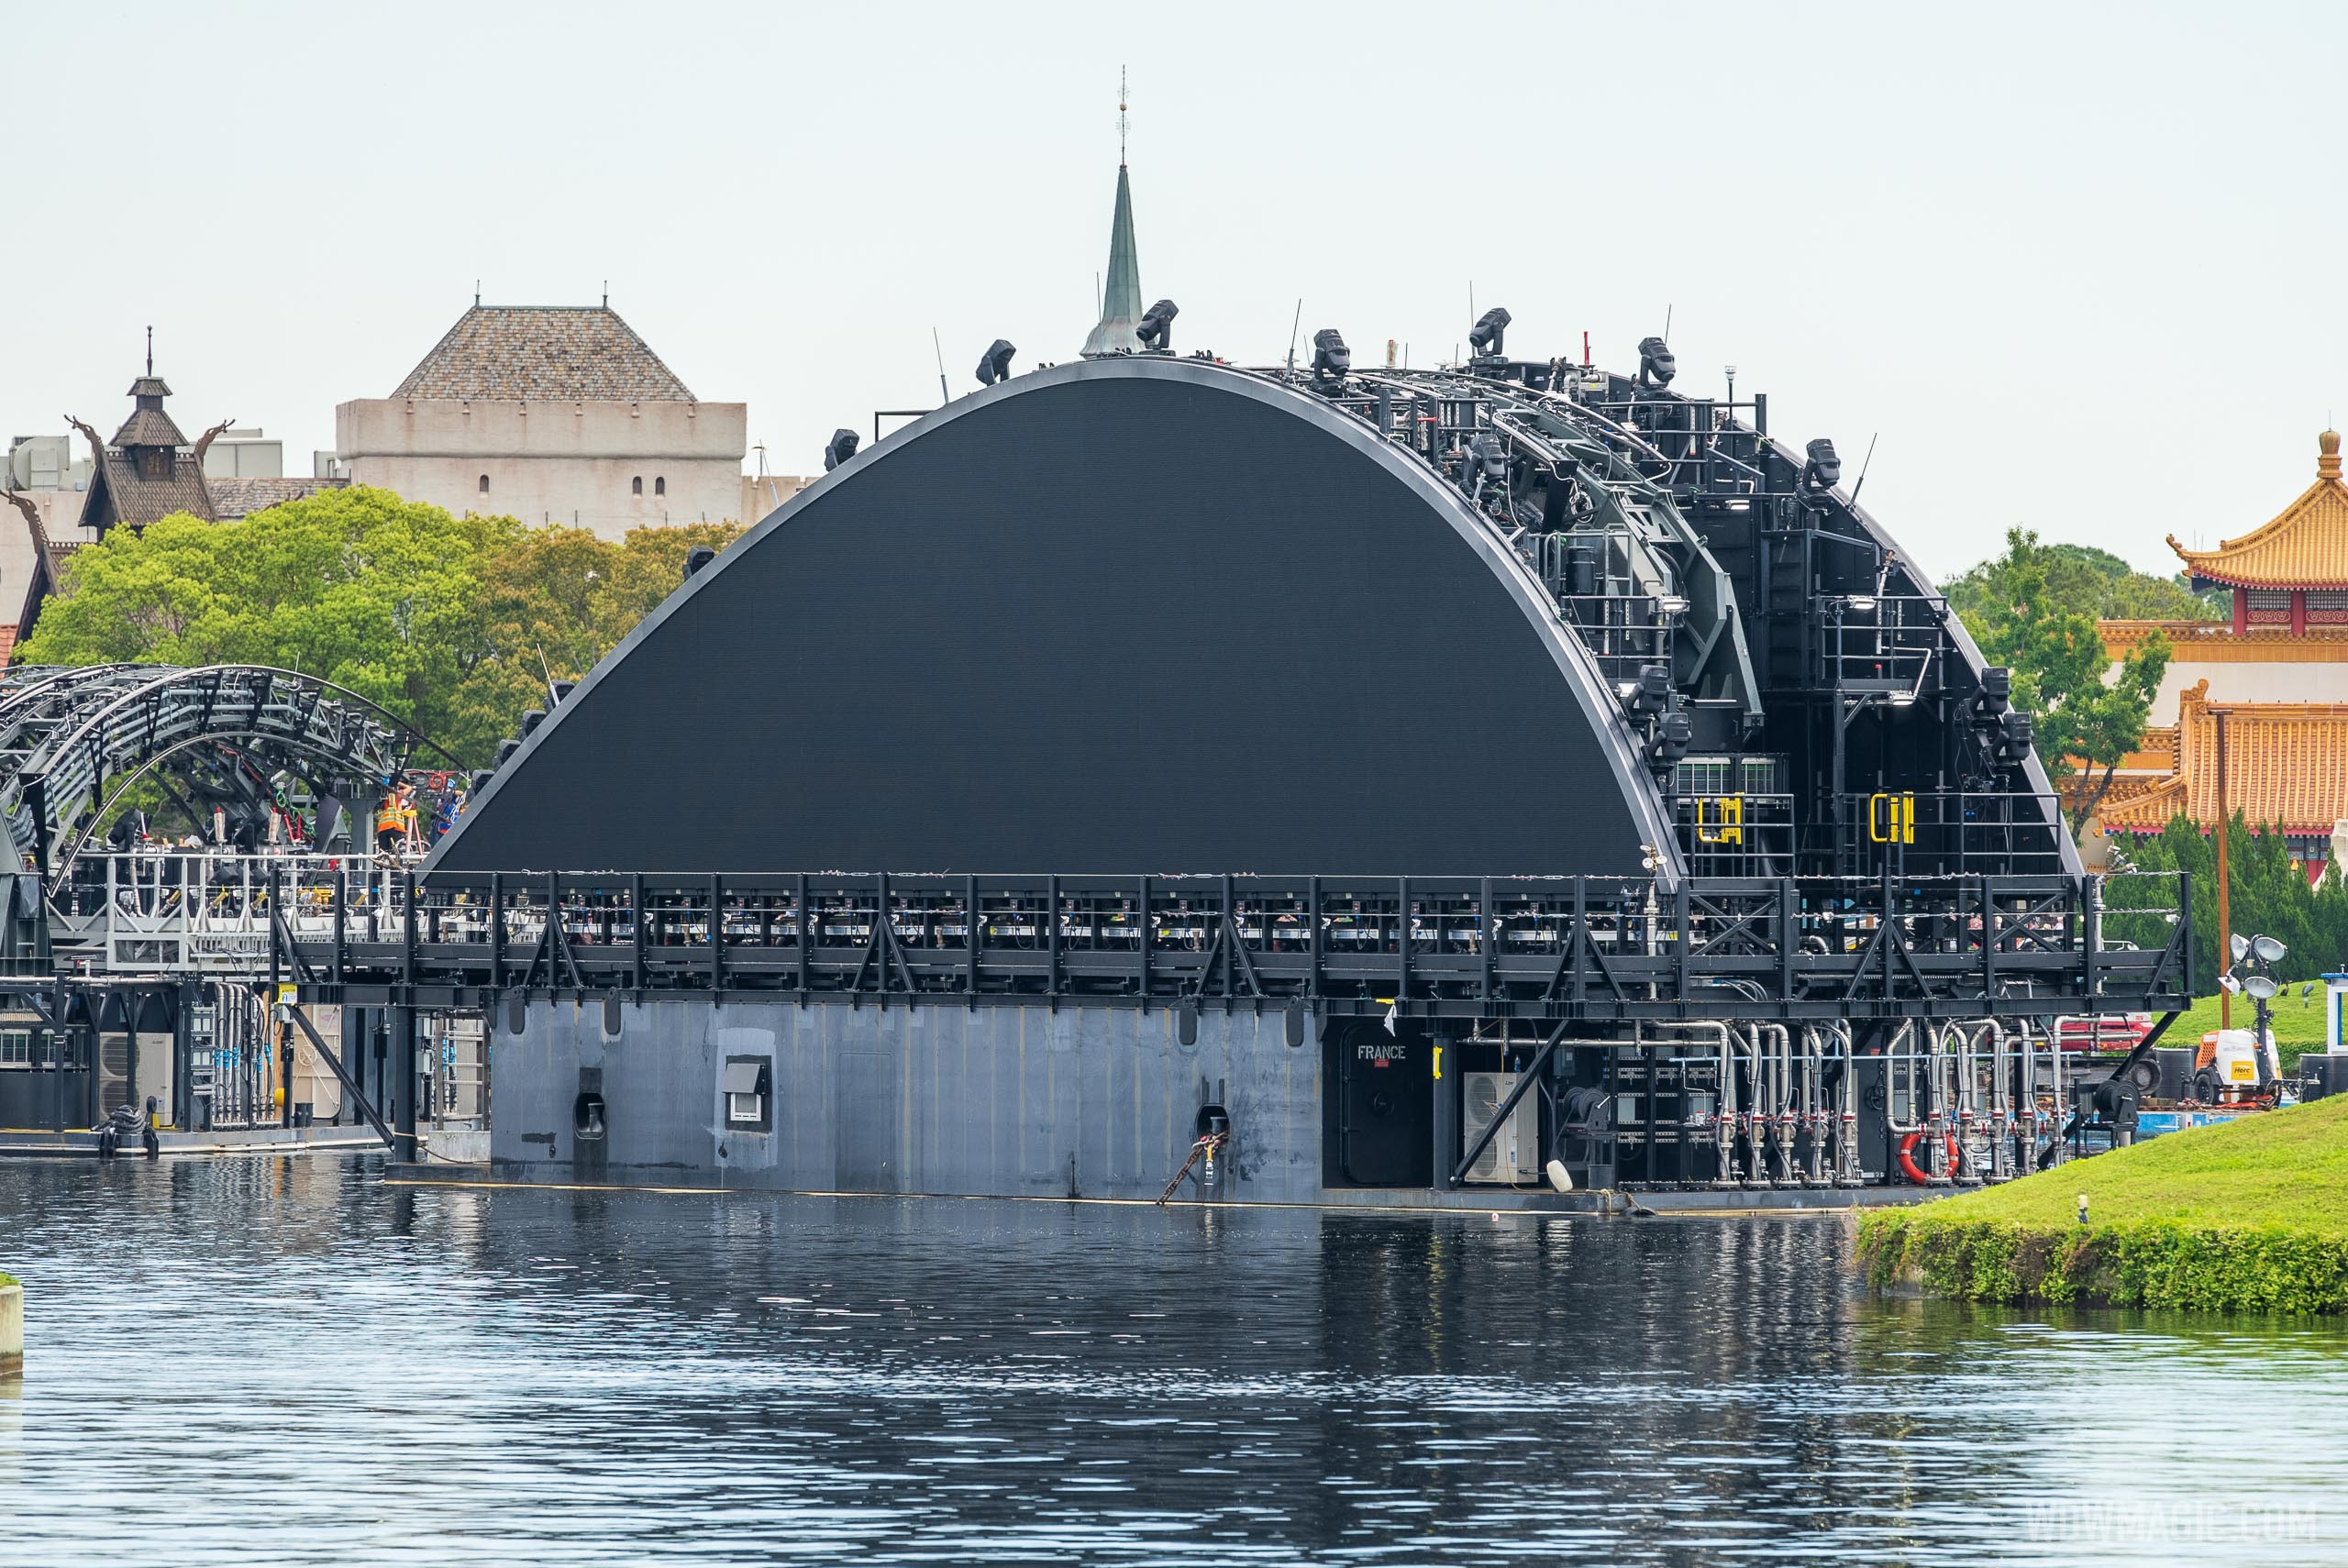 Third Harmonious fin barge (France) in position